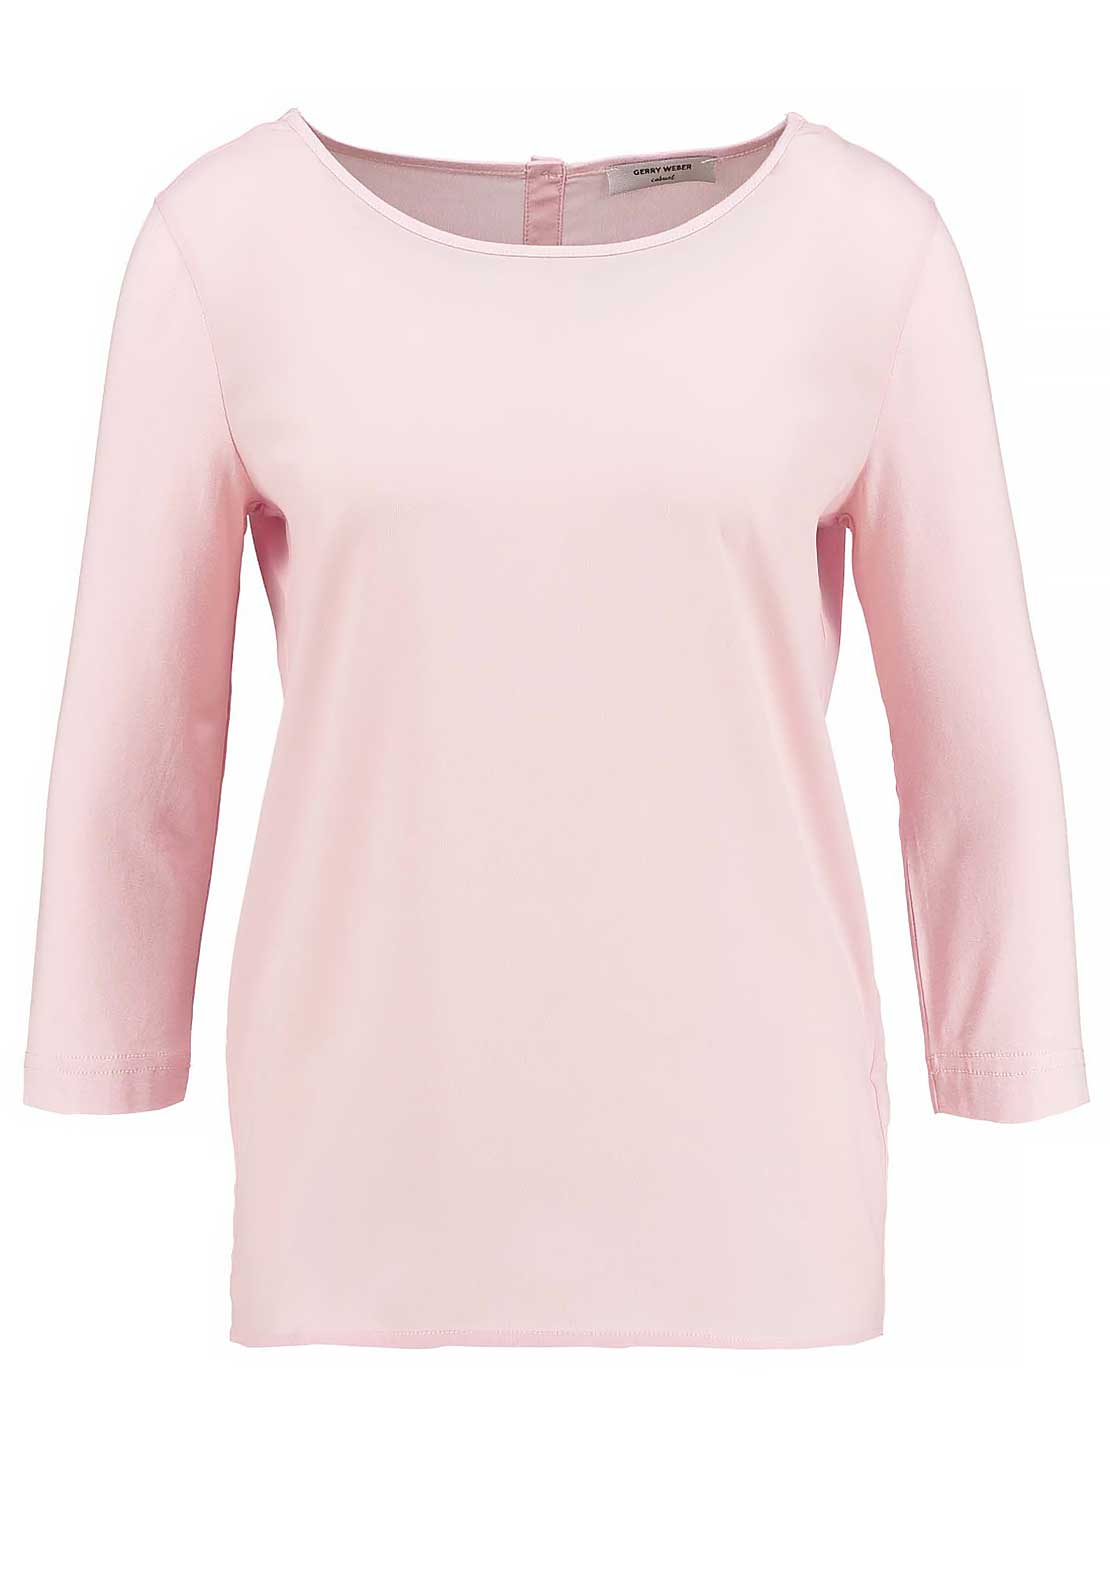 Gerry Weber Cropped Sleeve Chiffon Top, Pink